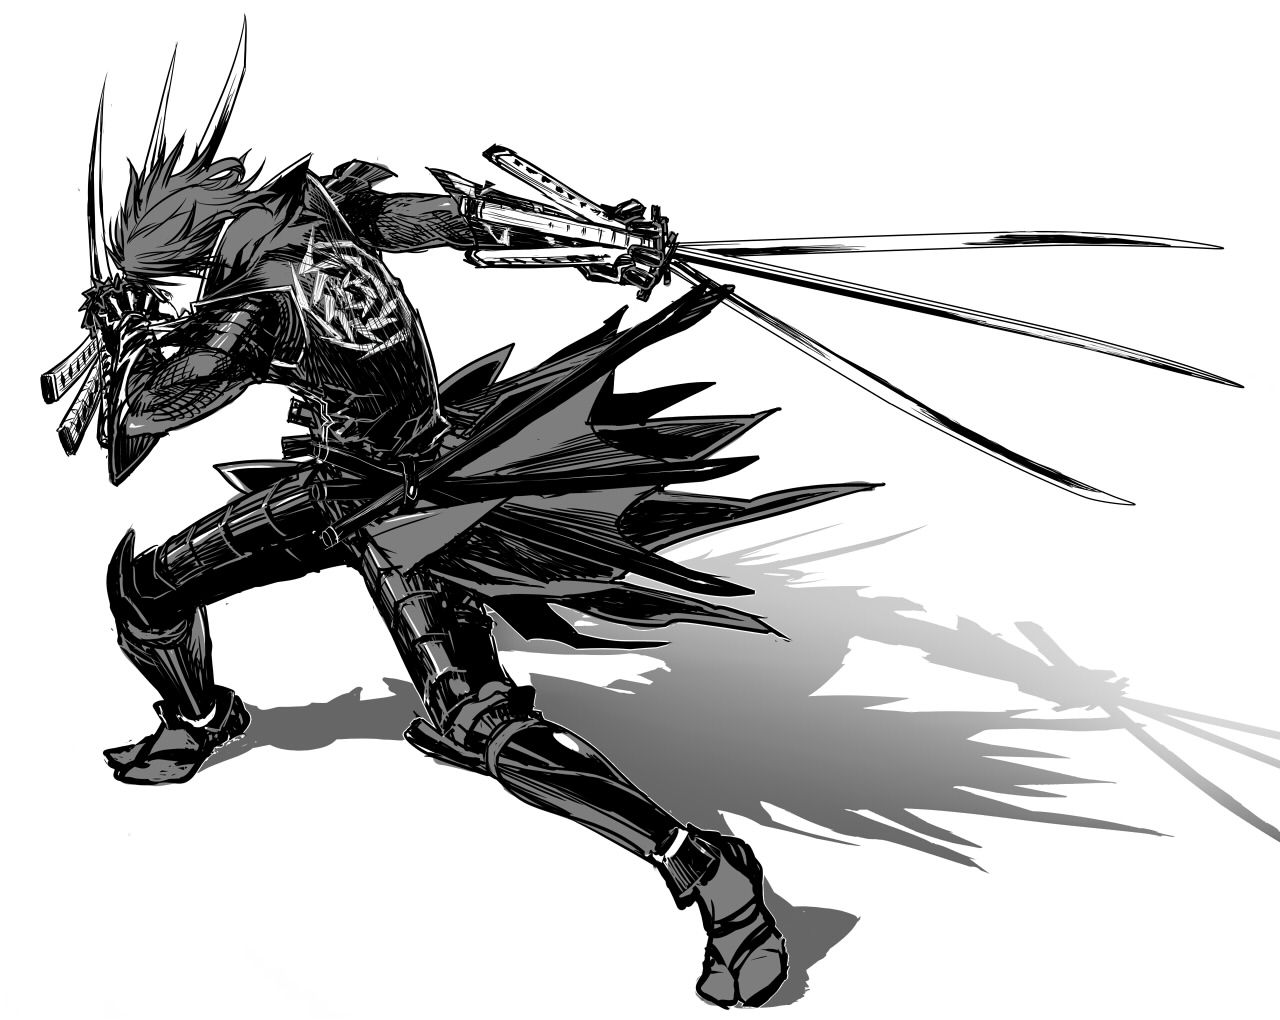 nodachi masamune - Google Search | Rolling in the Deep ...